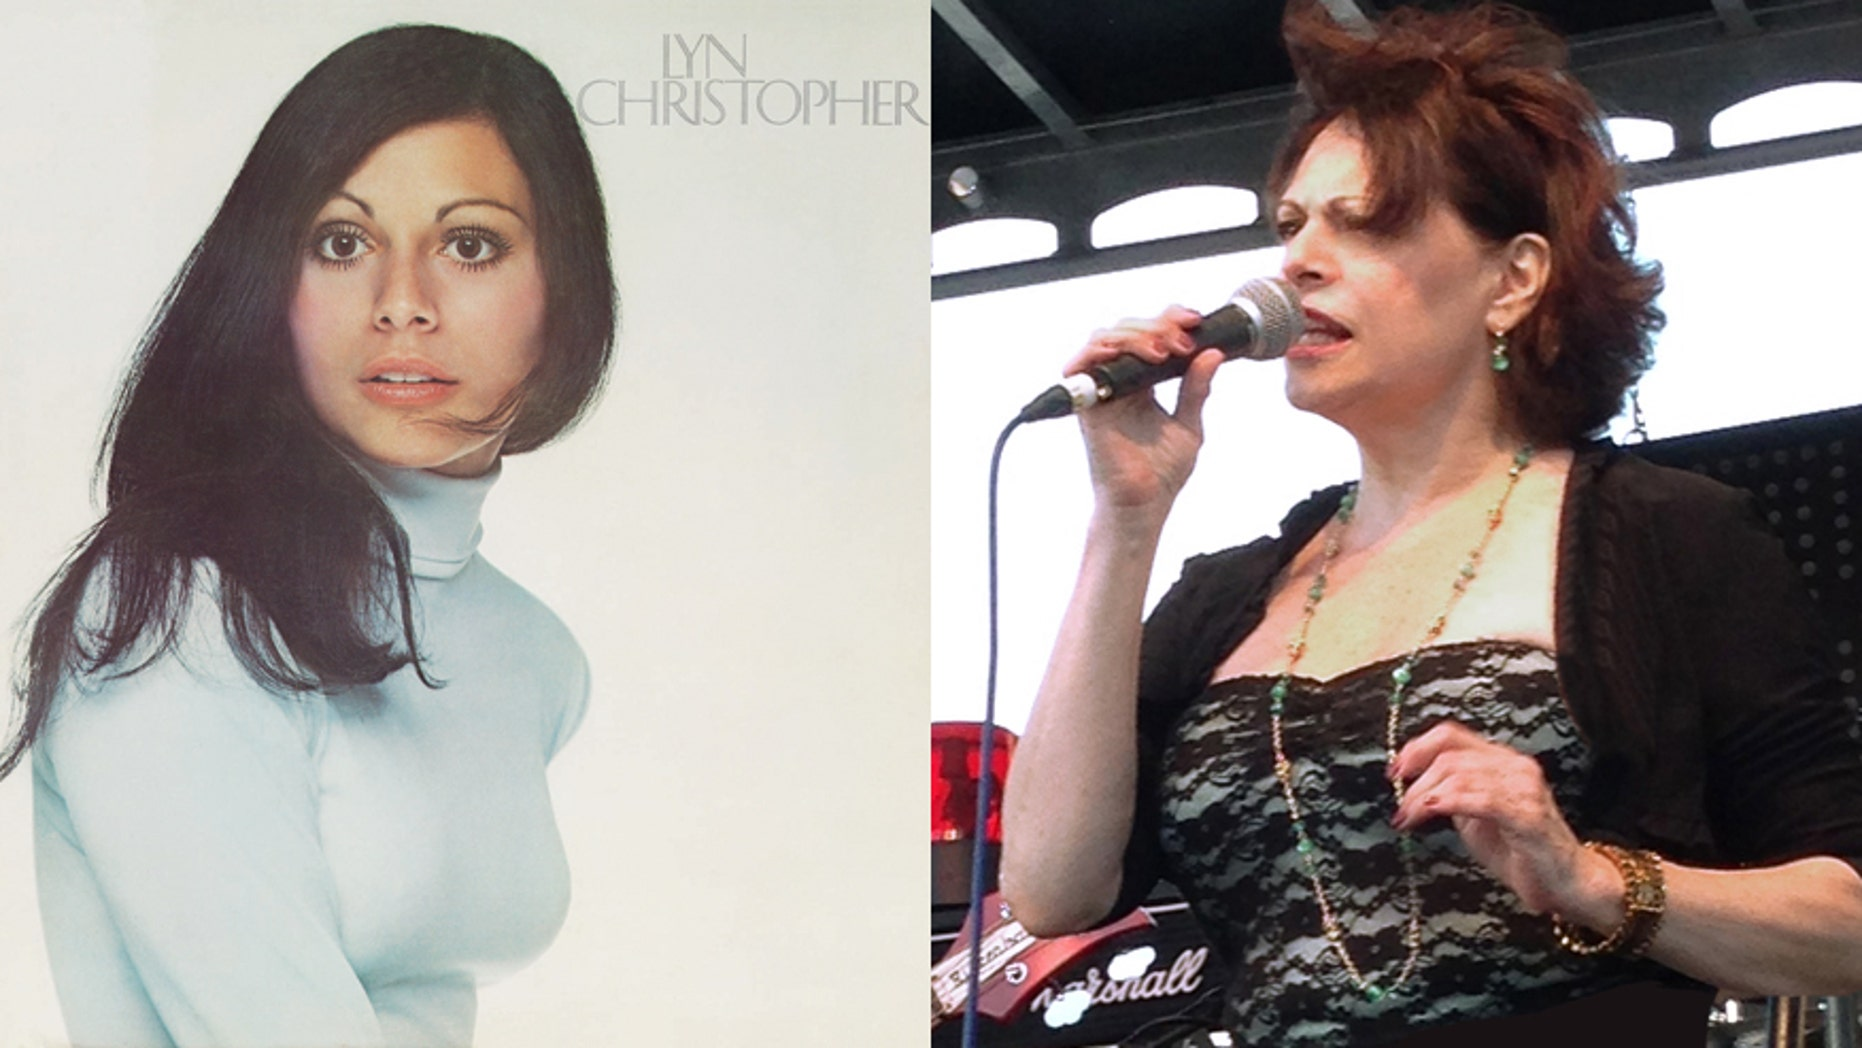 Lyn Christopher's album, left, and her at a KISS Kruise Party in Miami on Oct 27, 2013.